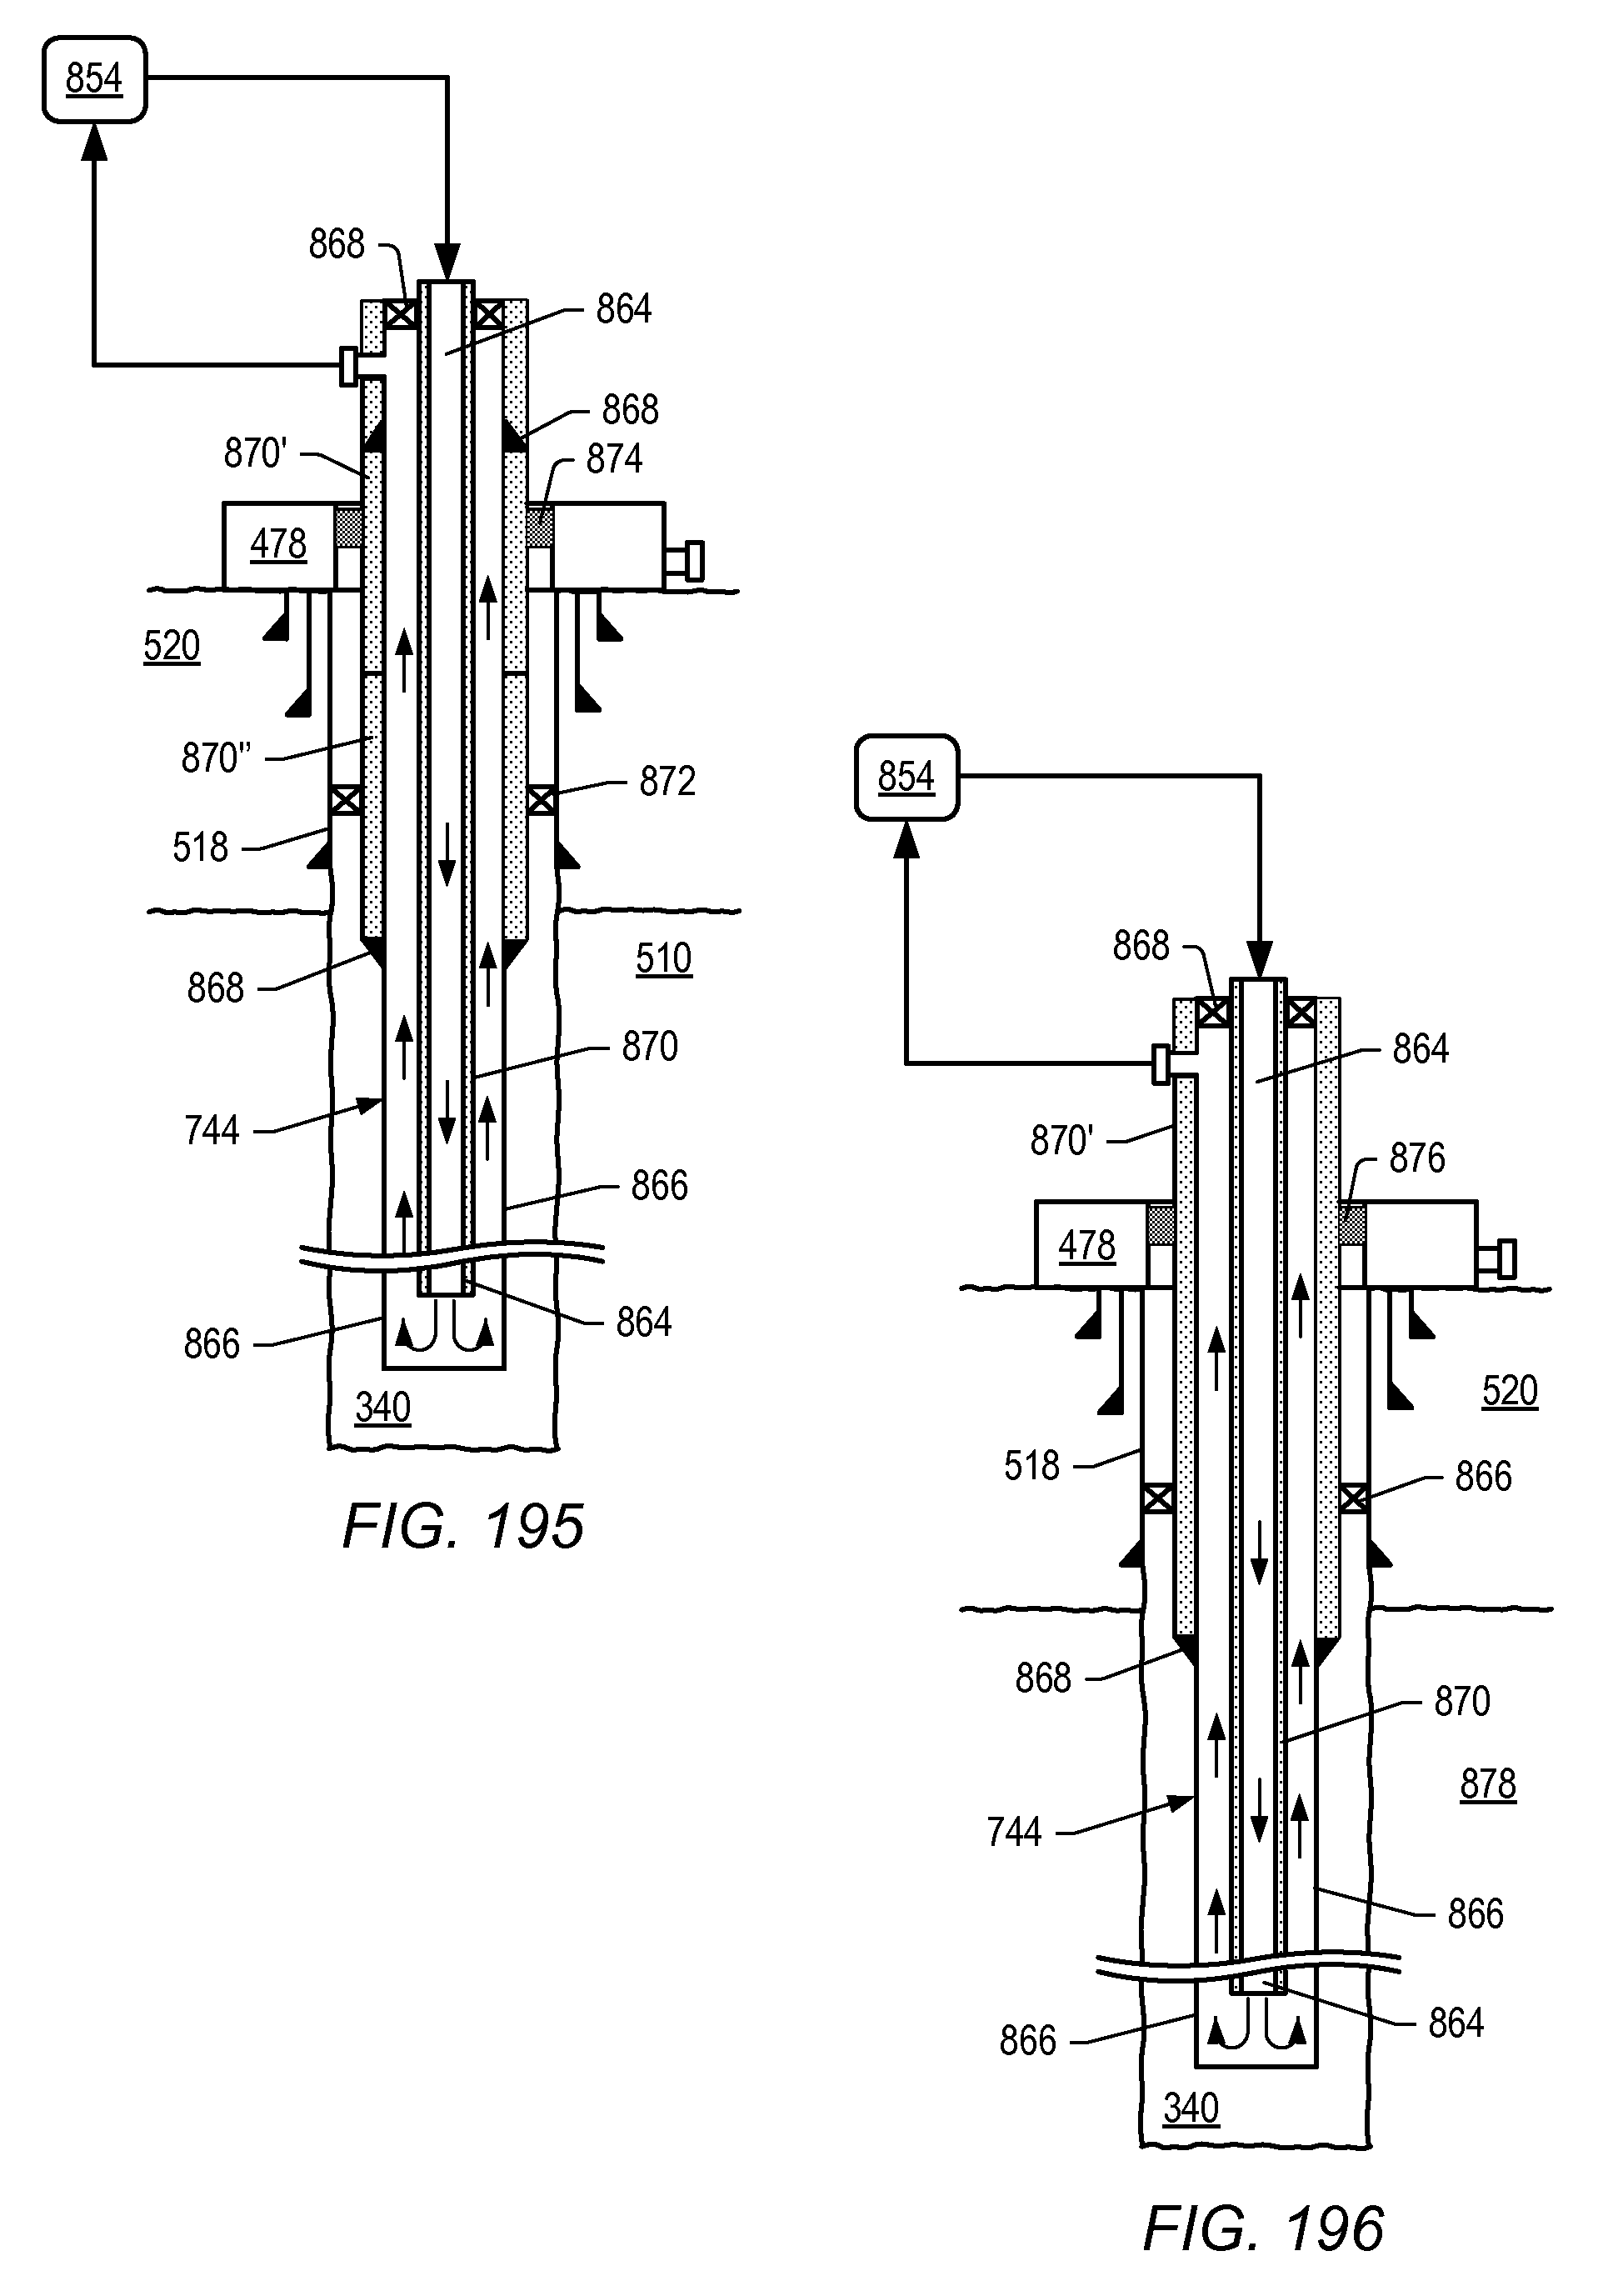 Patent Us 9528322 B2 Symbols Used In Furnace And Refrigeration Electrical Diagrams Domain Images